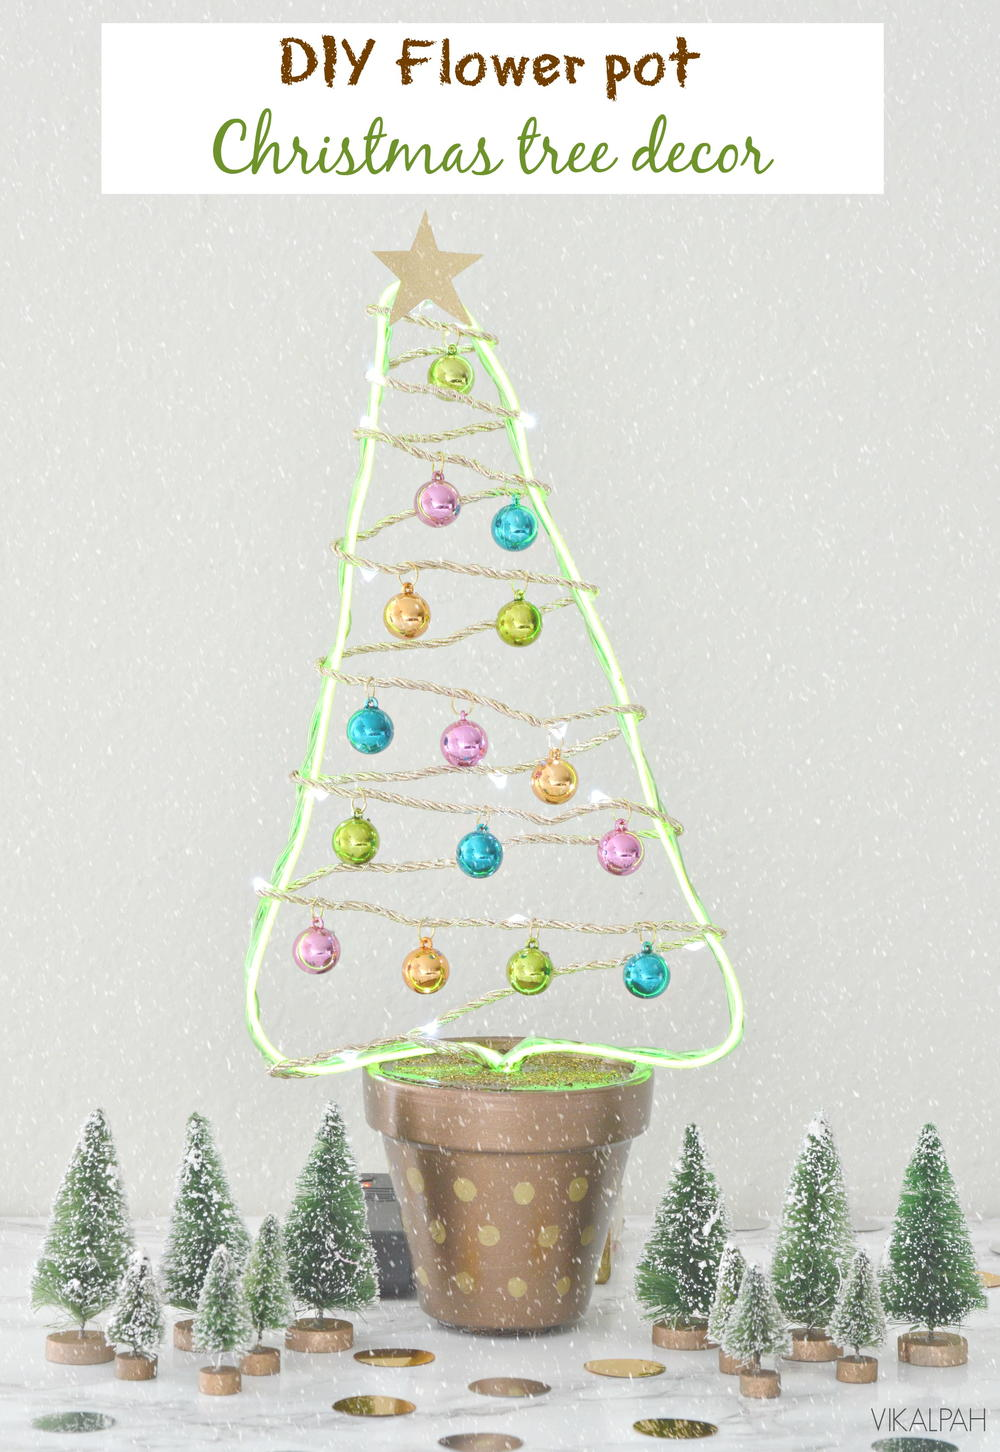 Diy Flower Pot Christmas Tree Decor Favecrafts Com